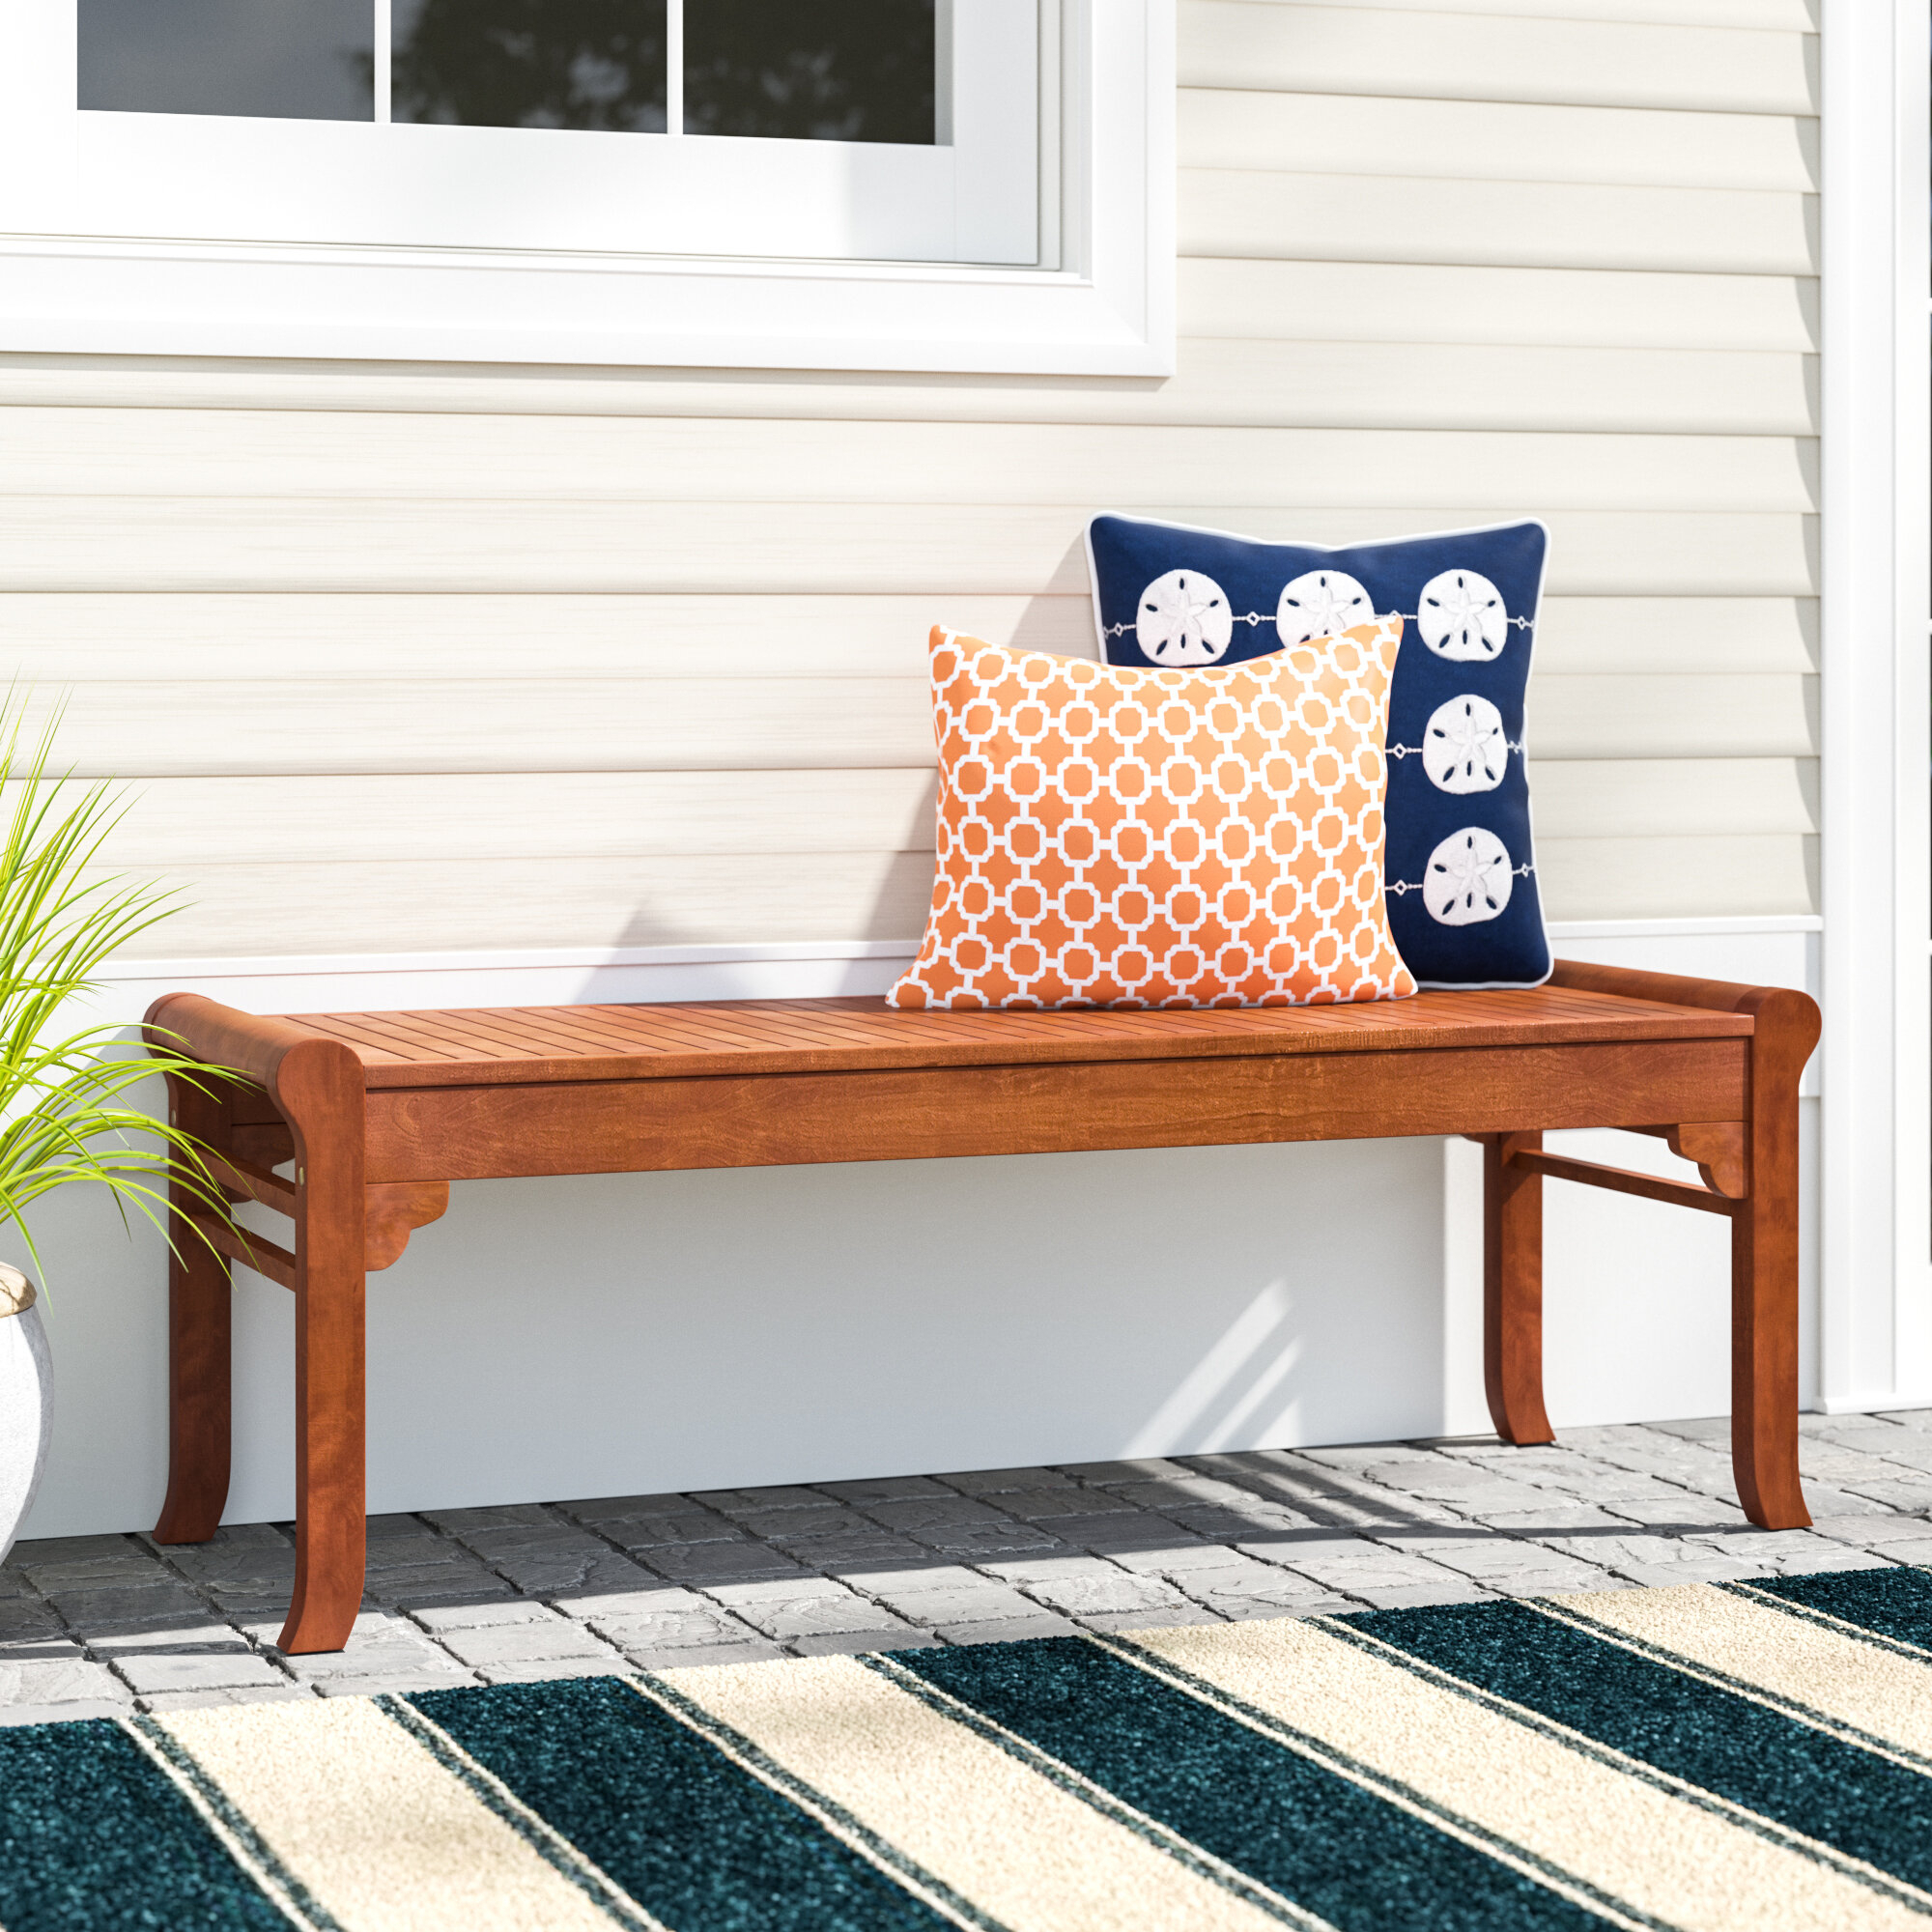 Amabel Wooden Picnic Bench For Amabel Wooden Garden Benches (View 10 of 25)